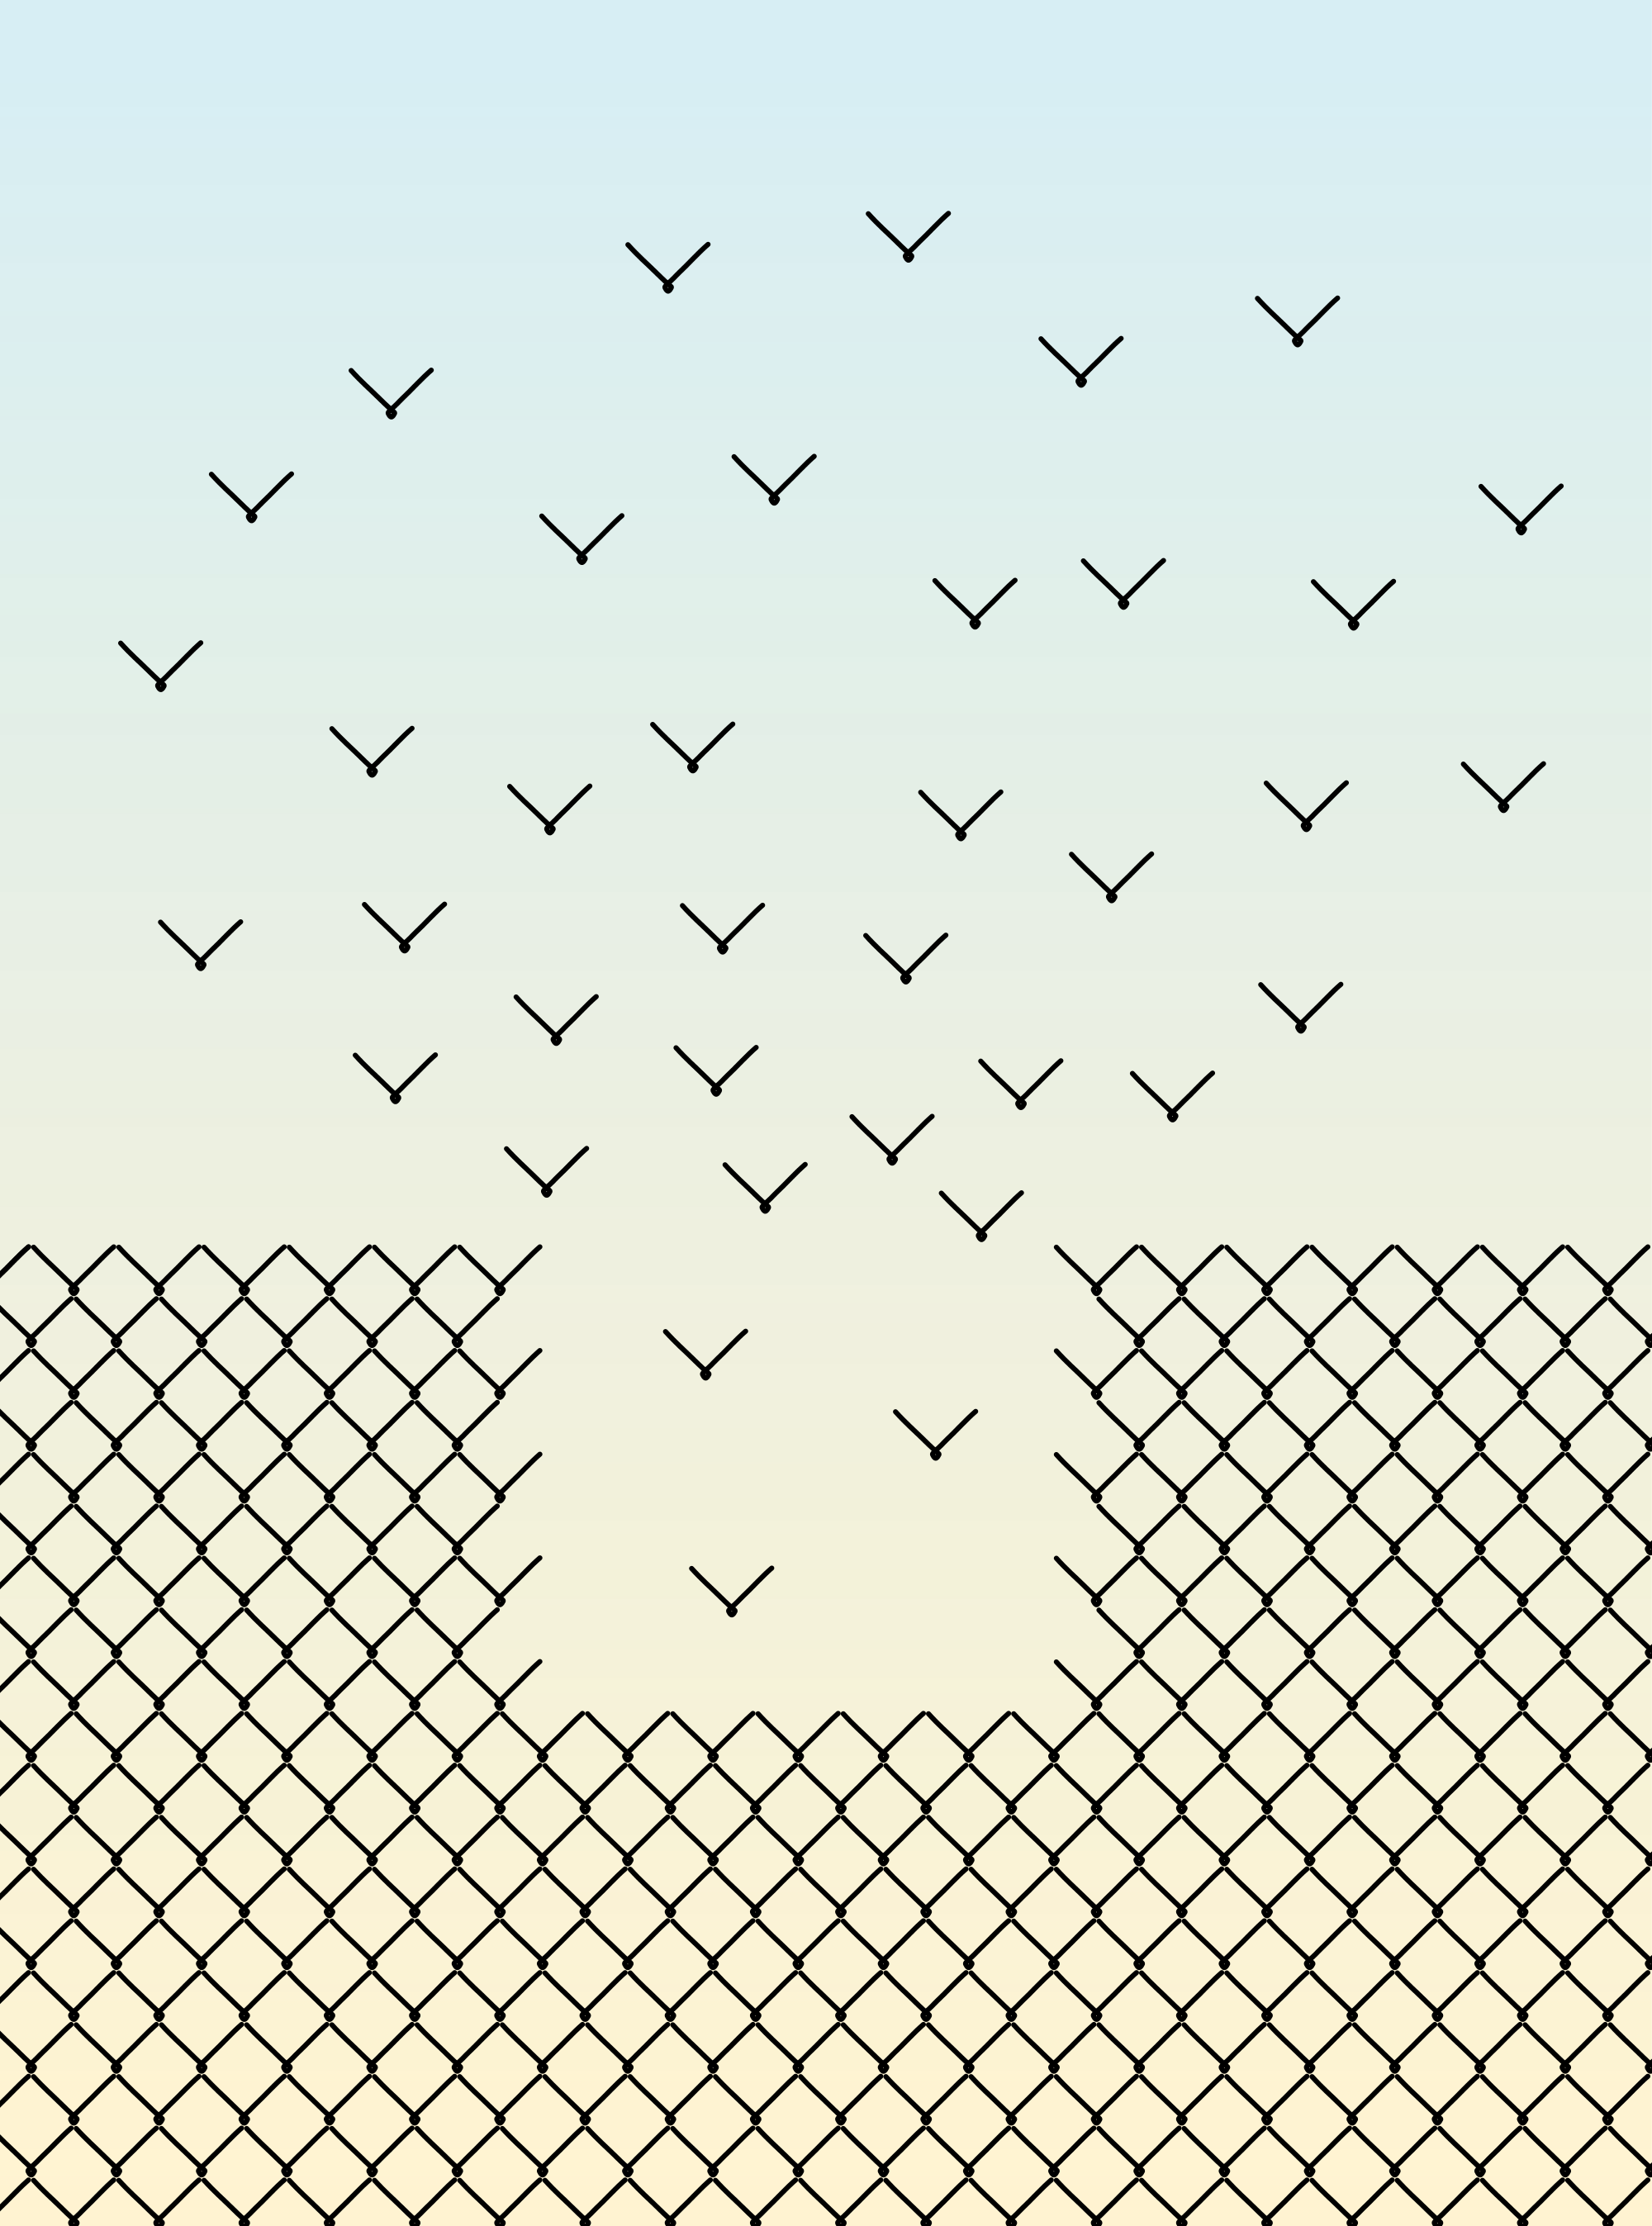 File link liberty svg. Chain fence png clip black and white download